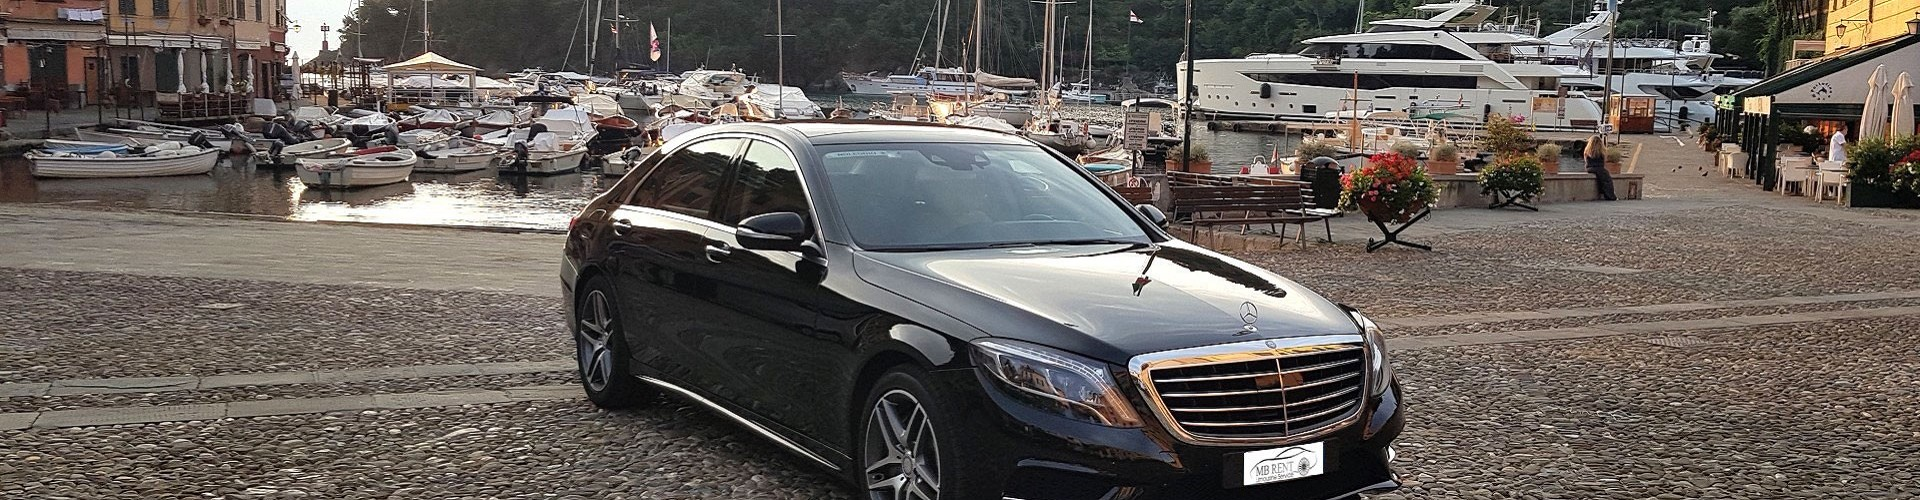 Private Transfer to Portofino | PrivateTaxi from Genova Airport to Belmond Hotel Splendido